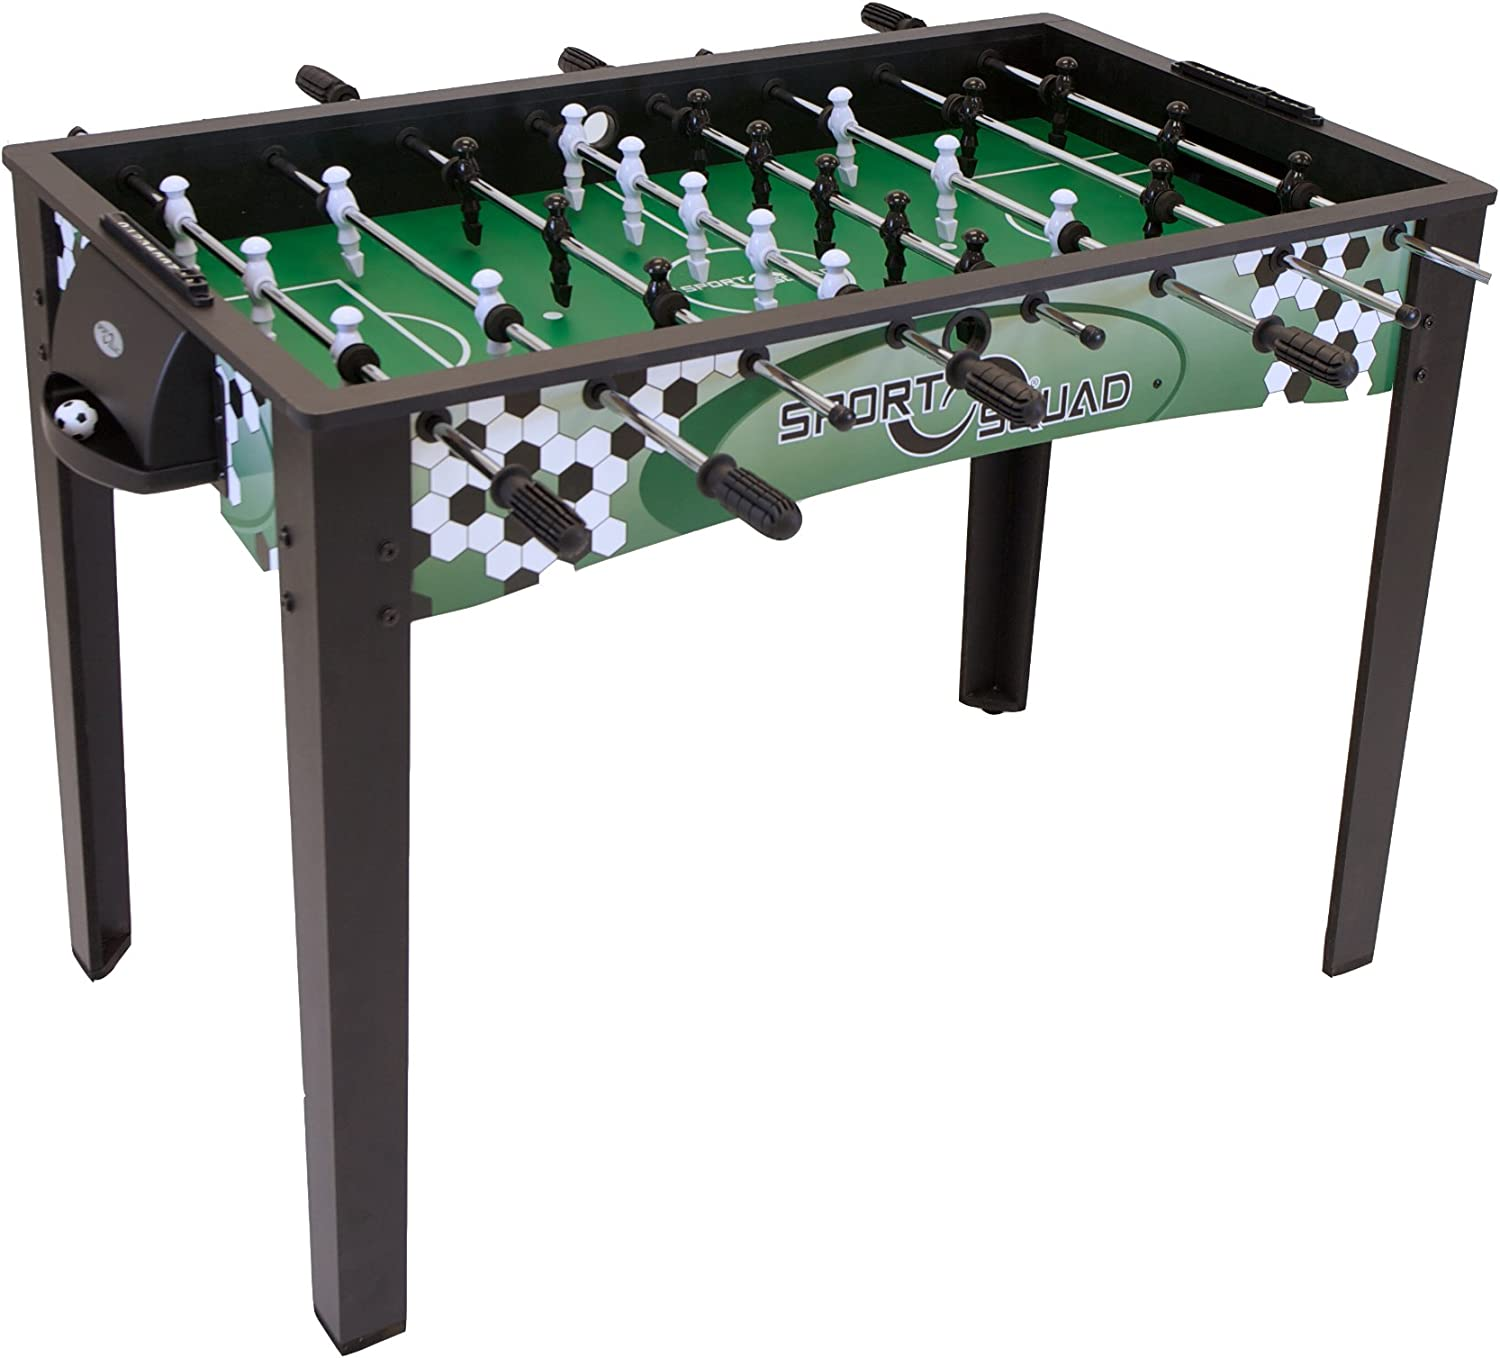 Amazon Com Sport Squad Fx48 48 Foosball Table For Adults And Kids Arcade Table Soccer Game For The Basement Or Game Room Quick And Easy Assembly Manual Scorers